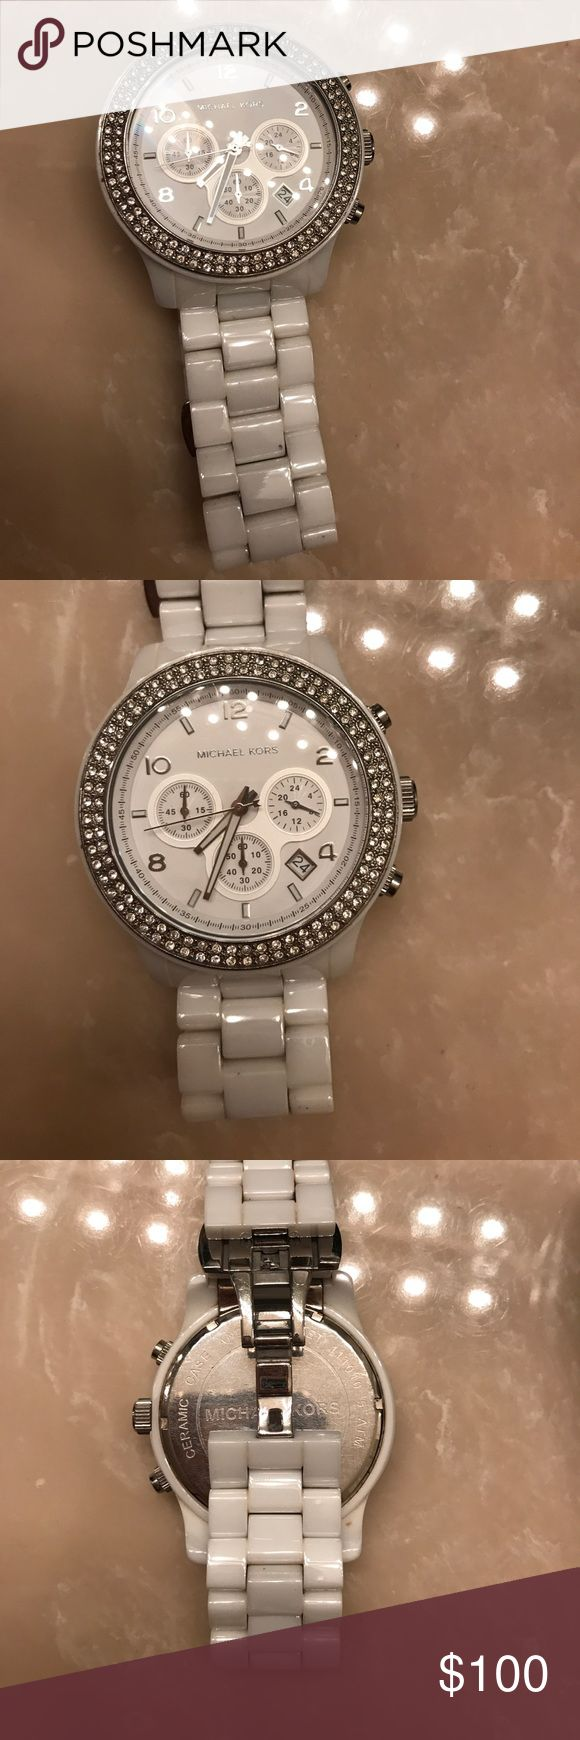 Ceramic Michael kors White big face watch Used Michael kors ceramic white watch. In great condition just needs new battery. Bought for 400$ 4 years ago. Michael Kors Jewelry Bracelets